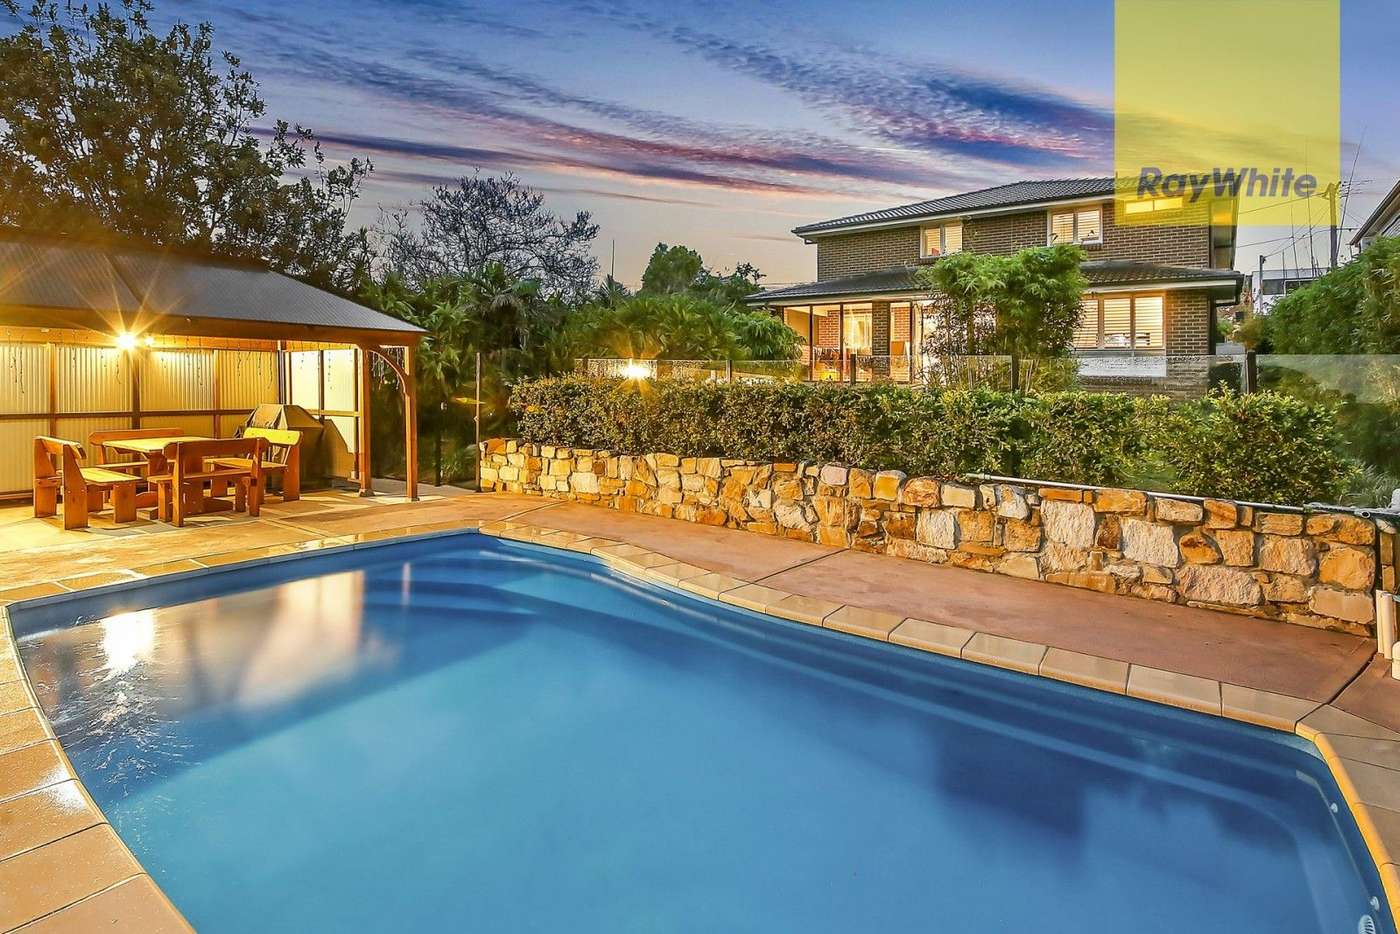 Main view of Homely house listing, 44 William Street, Holroyd NSW 2142